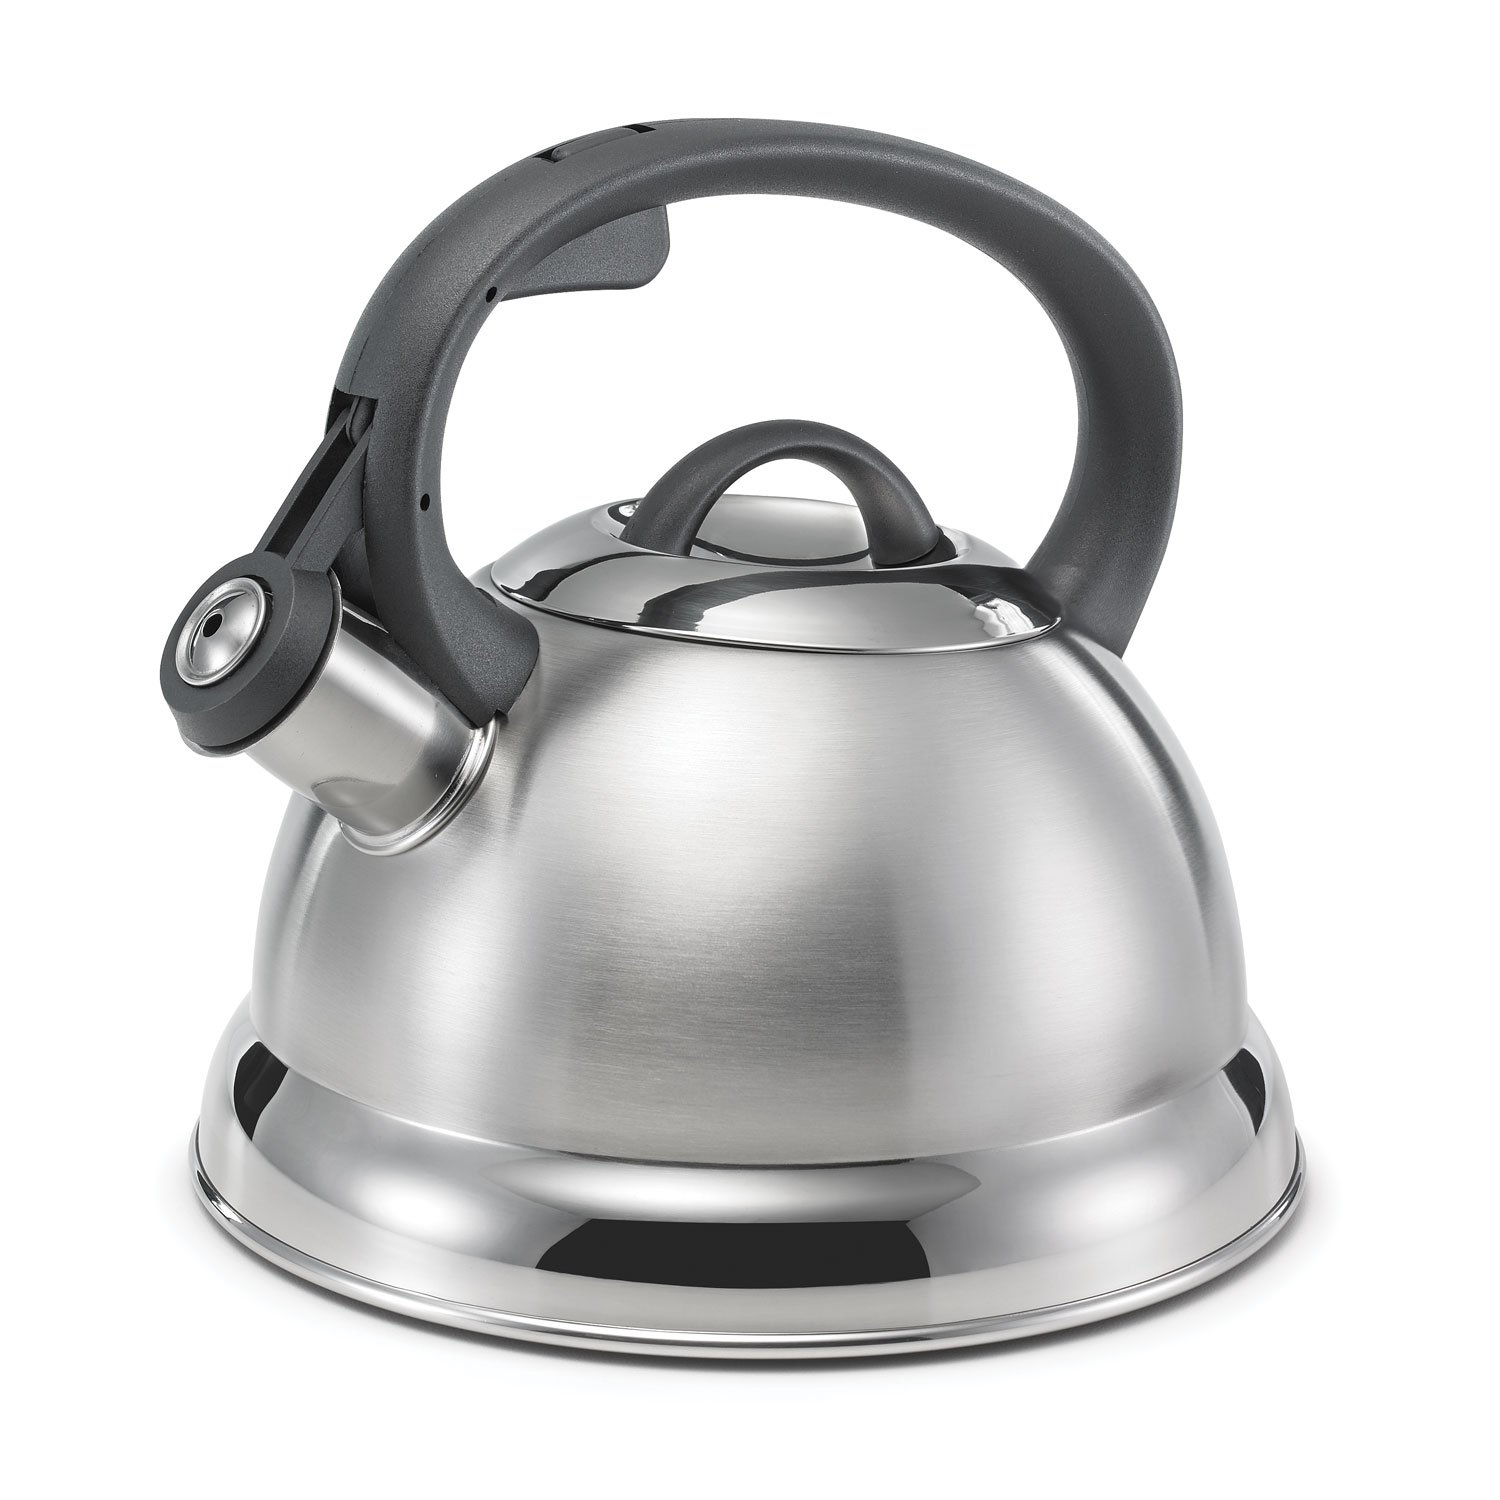 Polder KTH-145-47 Retro Whistling Tea Kettle, 2.4-Quart, Stainless Steel, 3-Ply Encapsulated Base Heats Water Fast